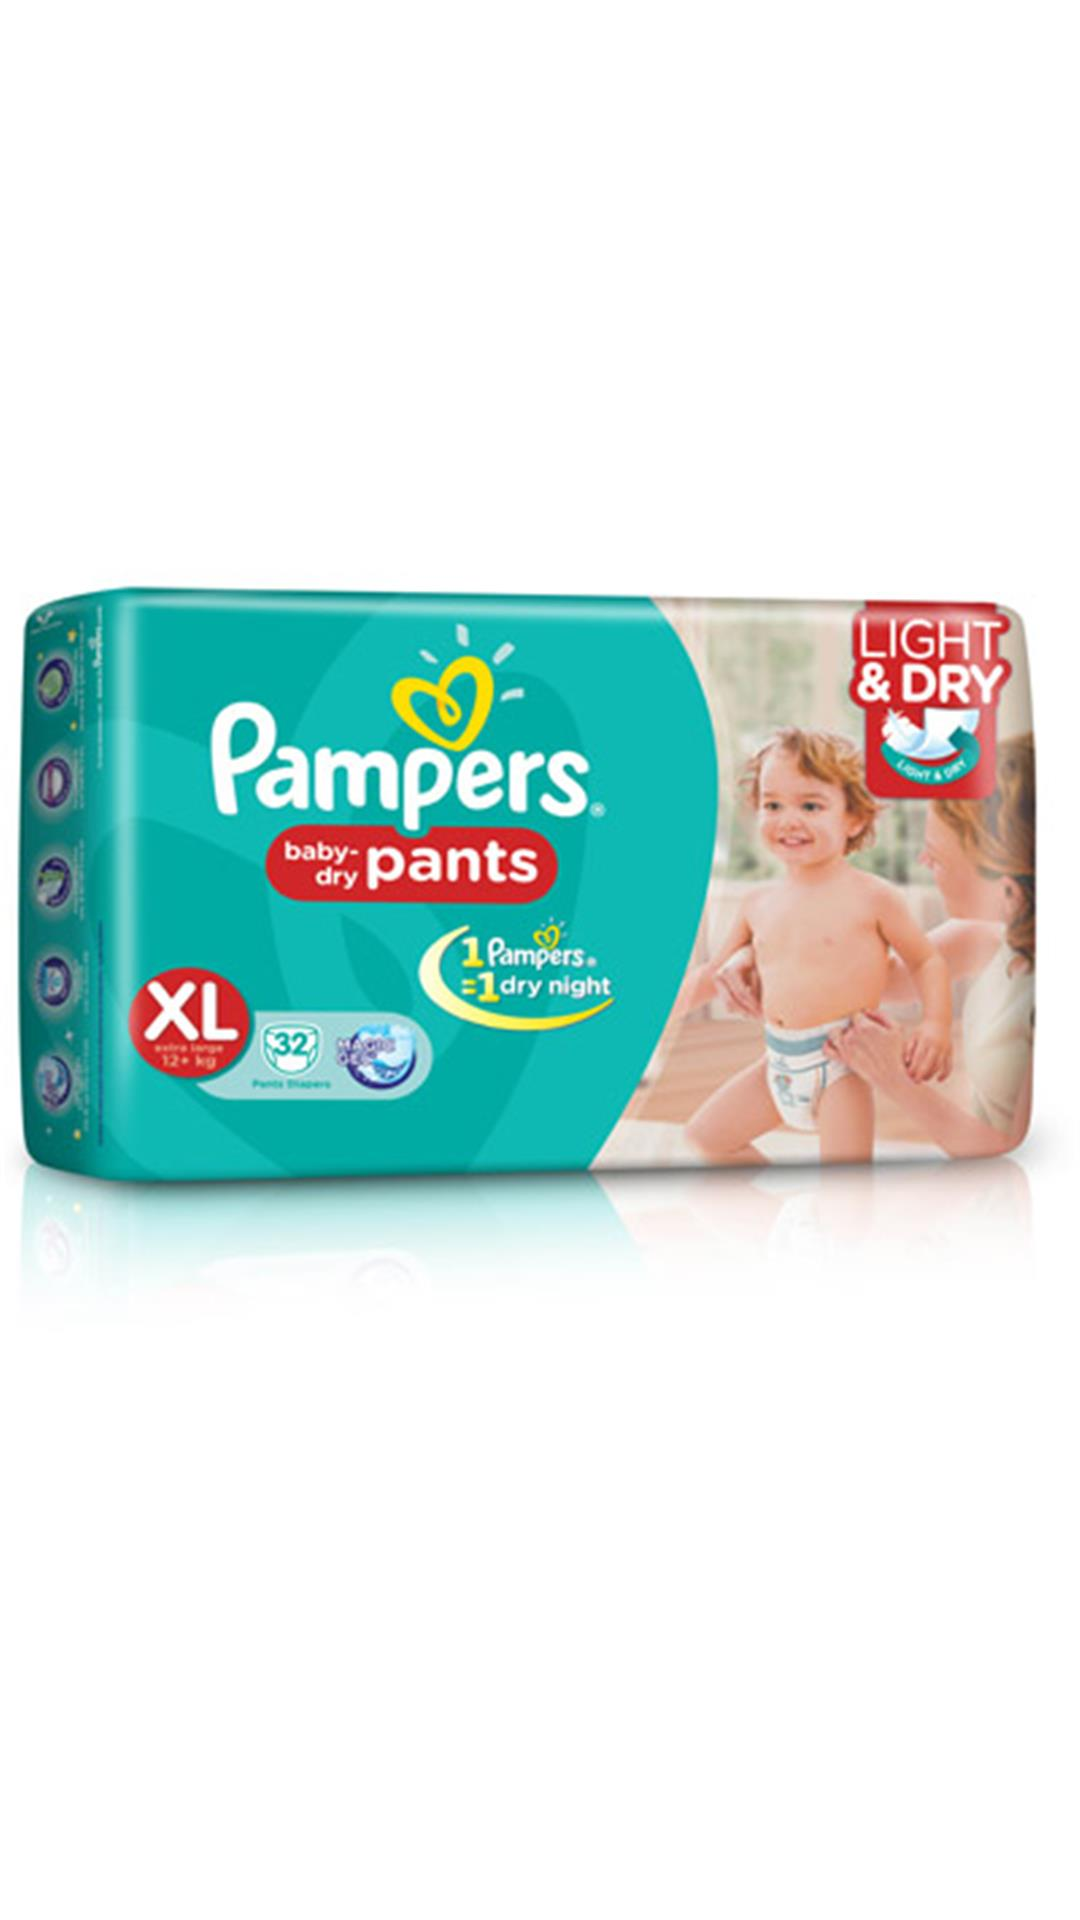 Pampers Baby Dry Pants Diaper XL - 32 Pcs(Pack of 2)